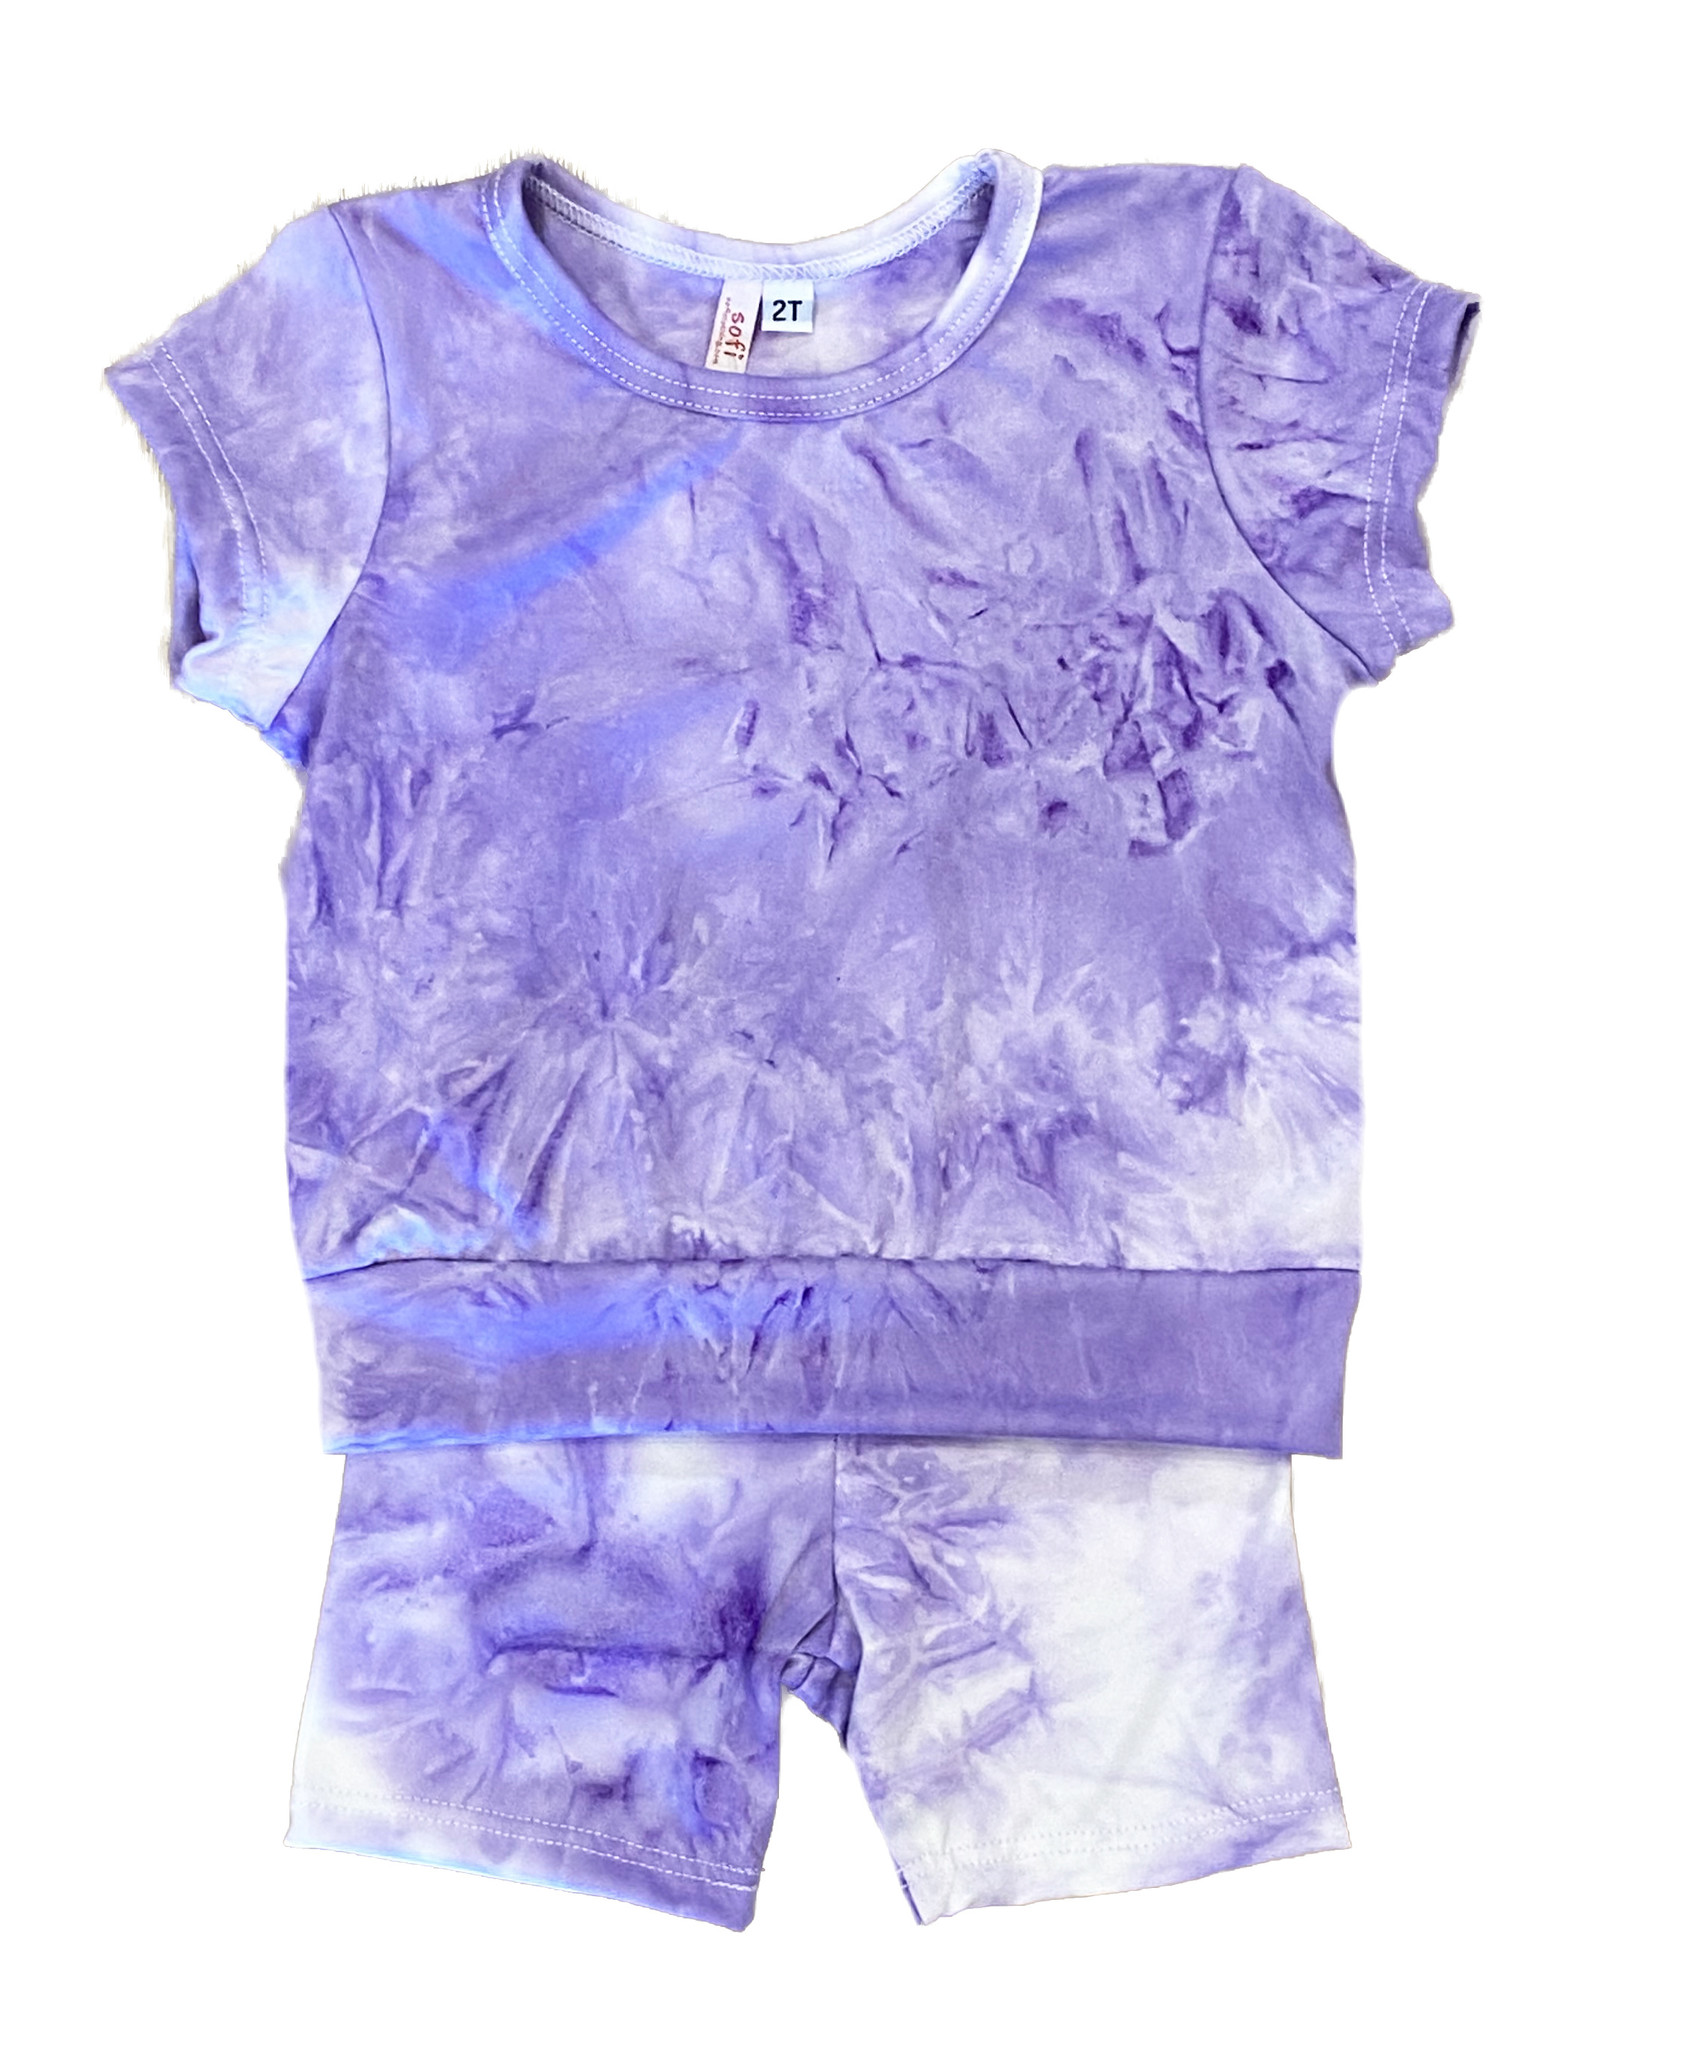 Sofi Lilac TD Bike Short Set - Infant